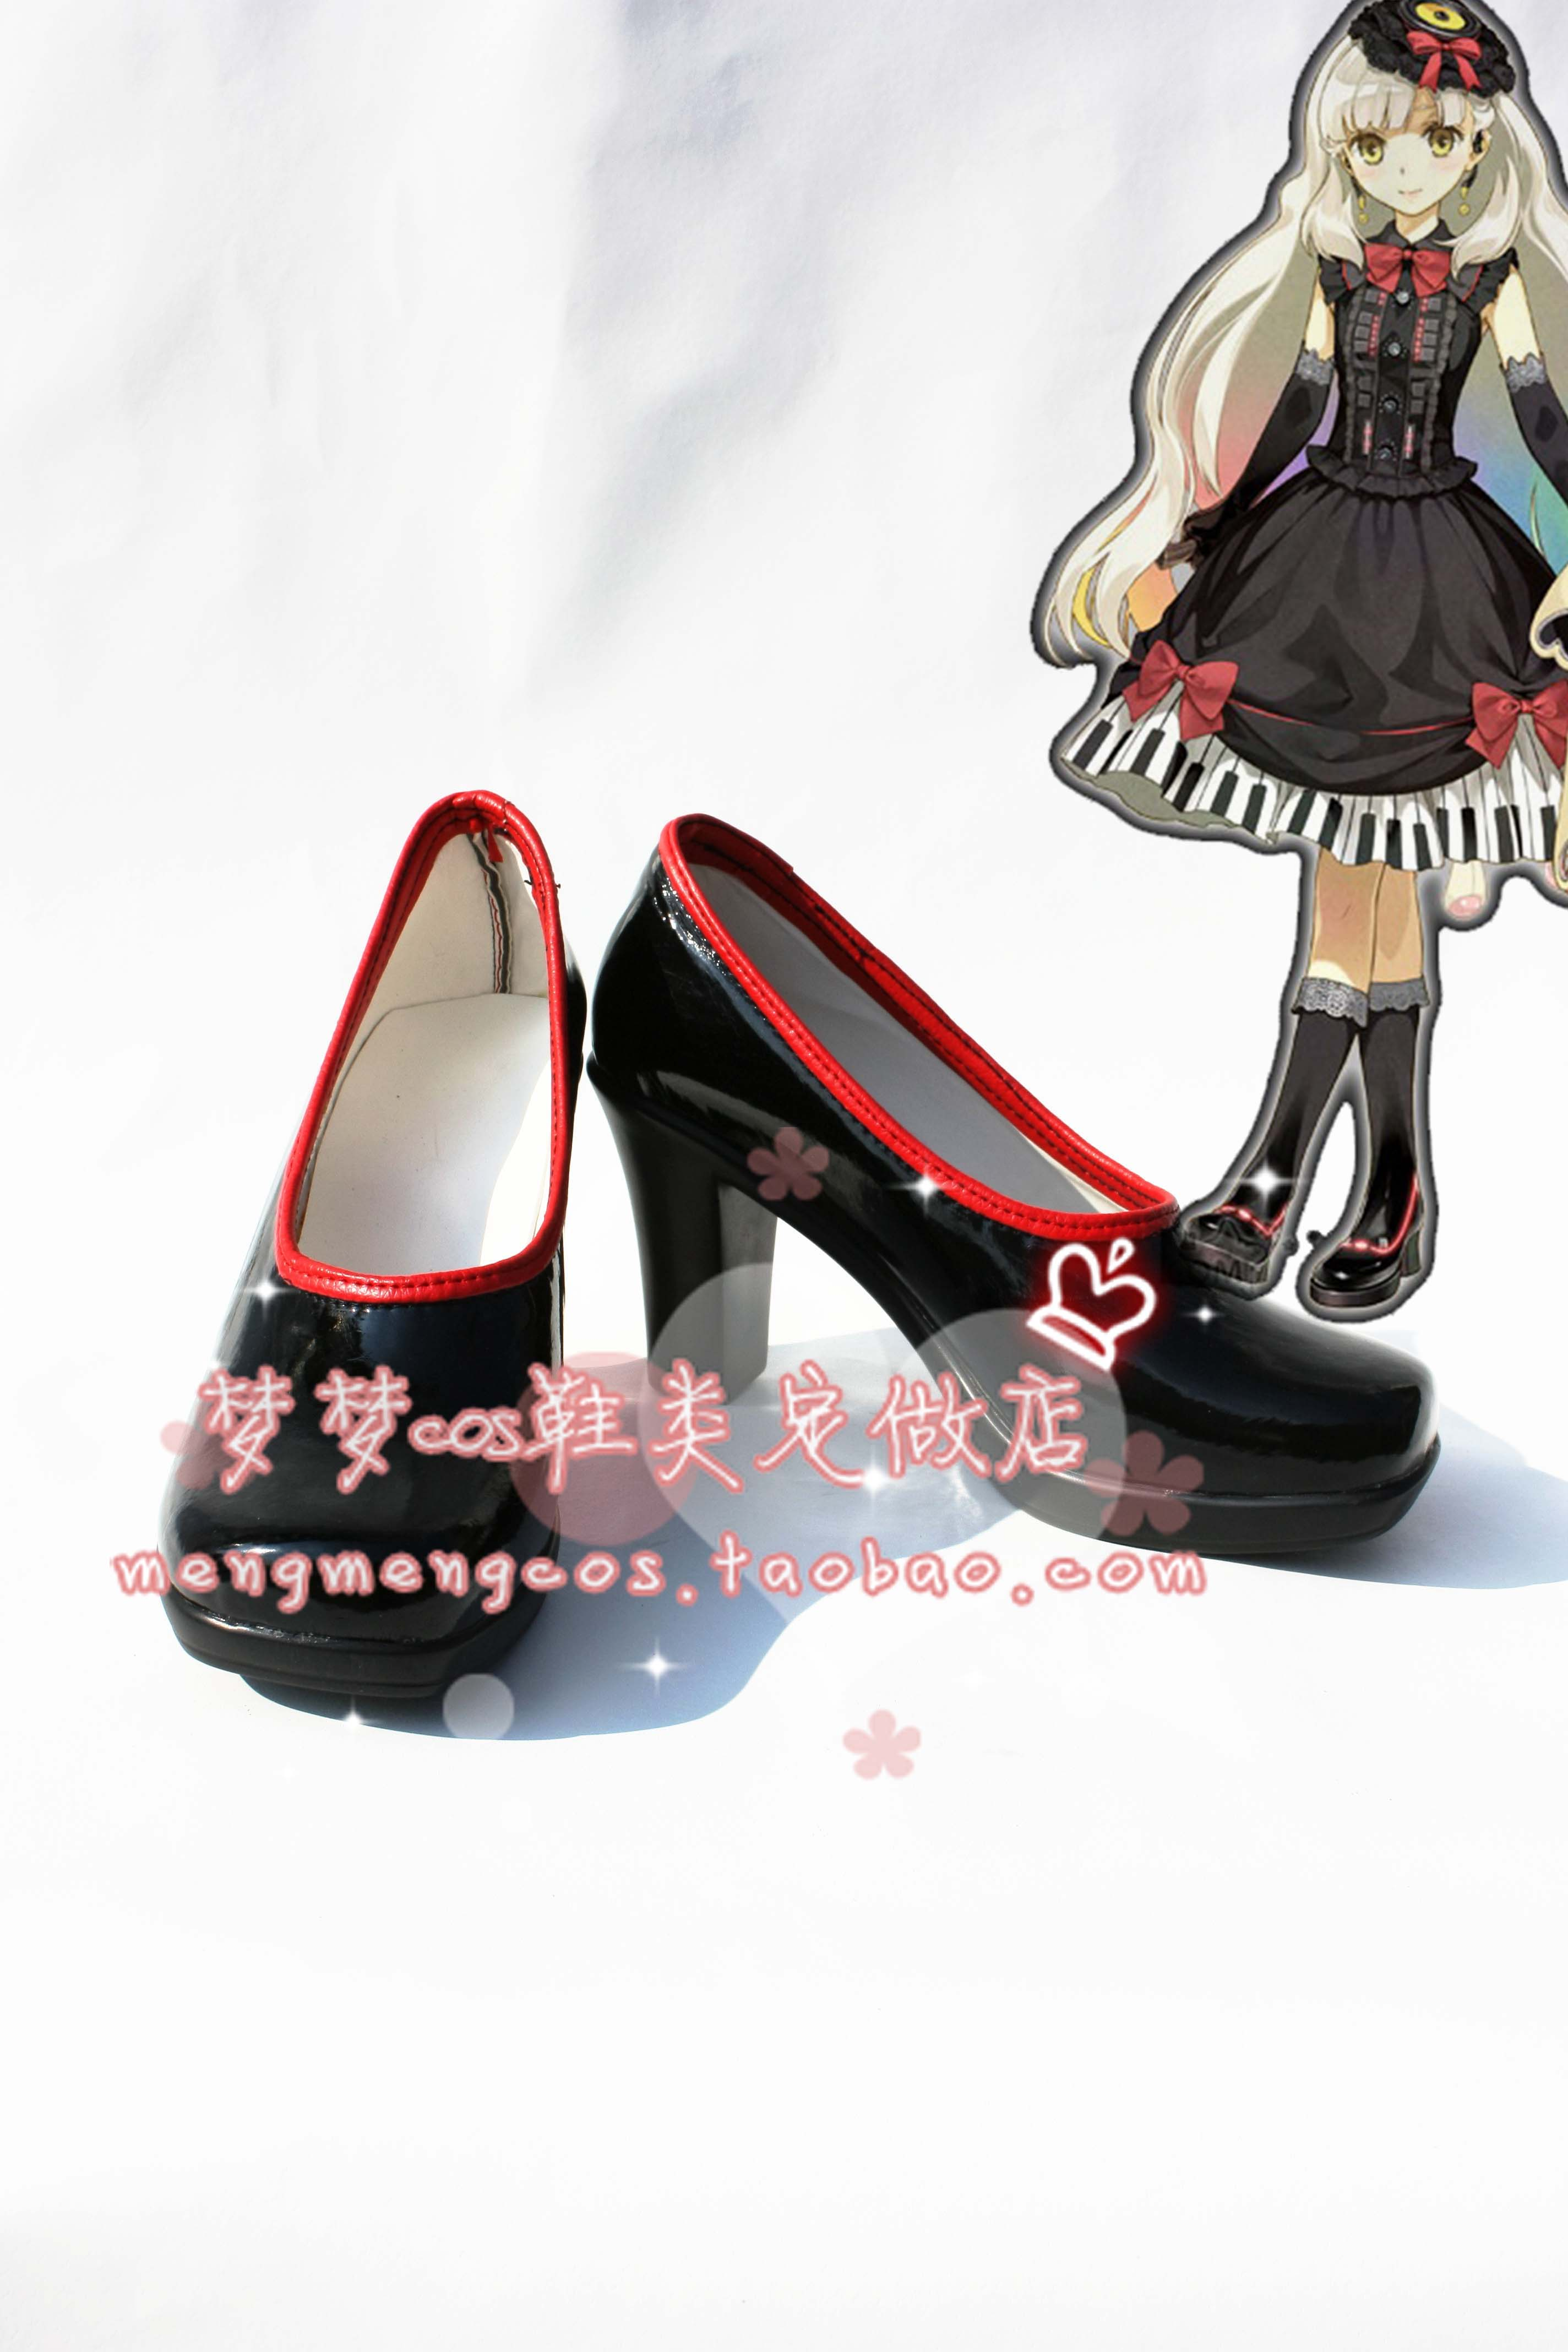 1355 vocaloid3 mayu  Cosplay Shoes Boots Custom Made